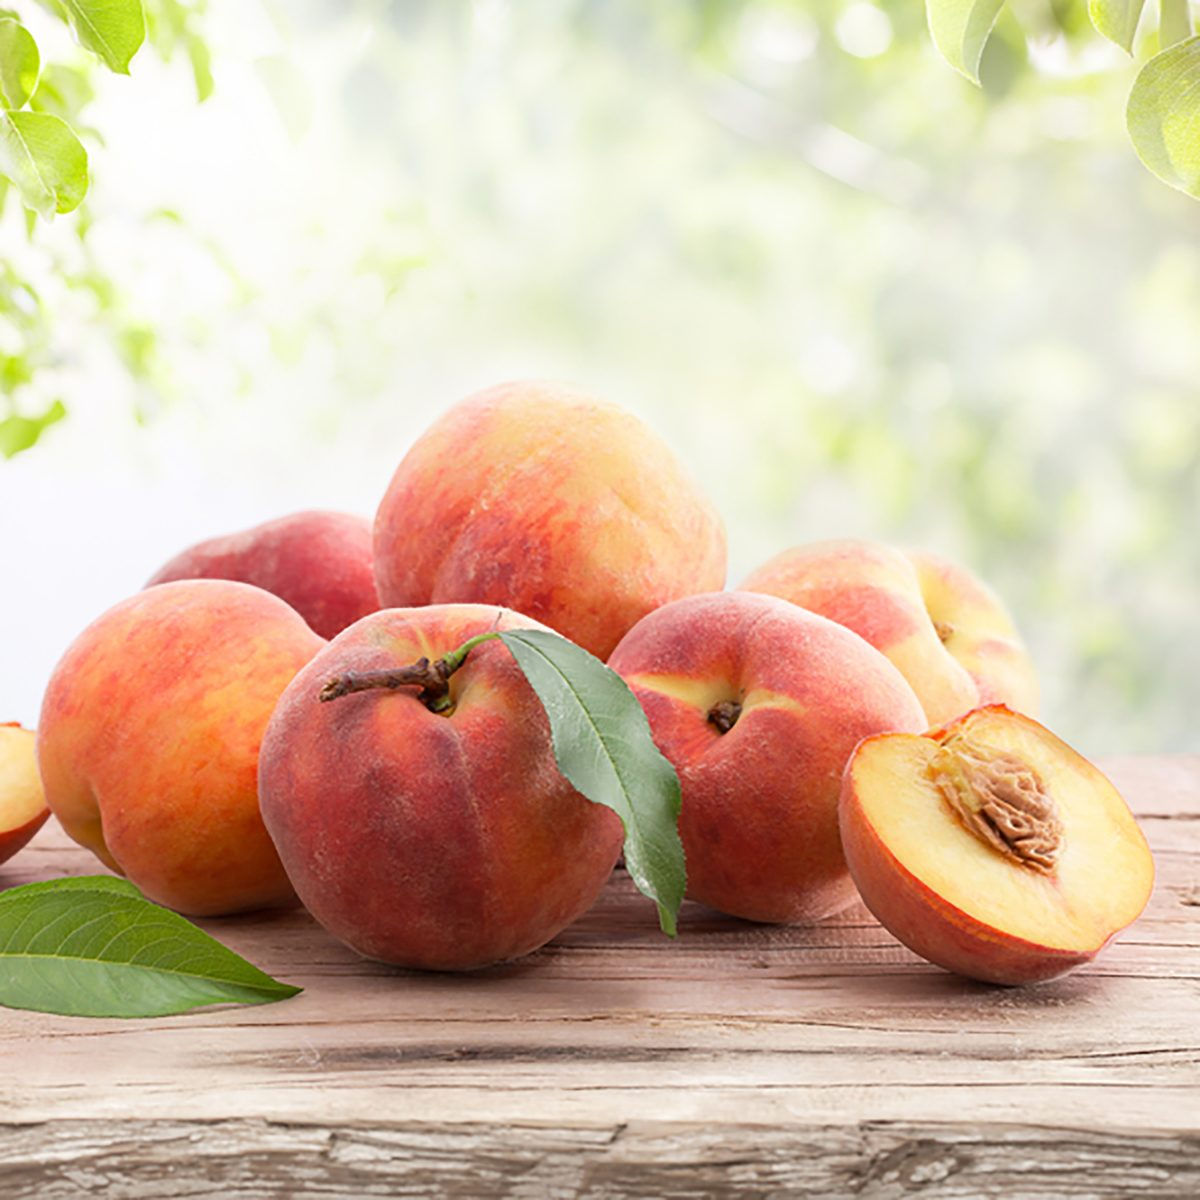 Ripe peaches with leaves on a wooden board on a background of green leaves; Shutterstock ID 682256068